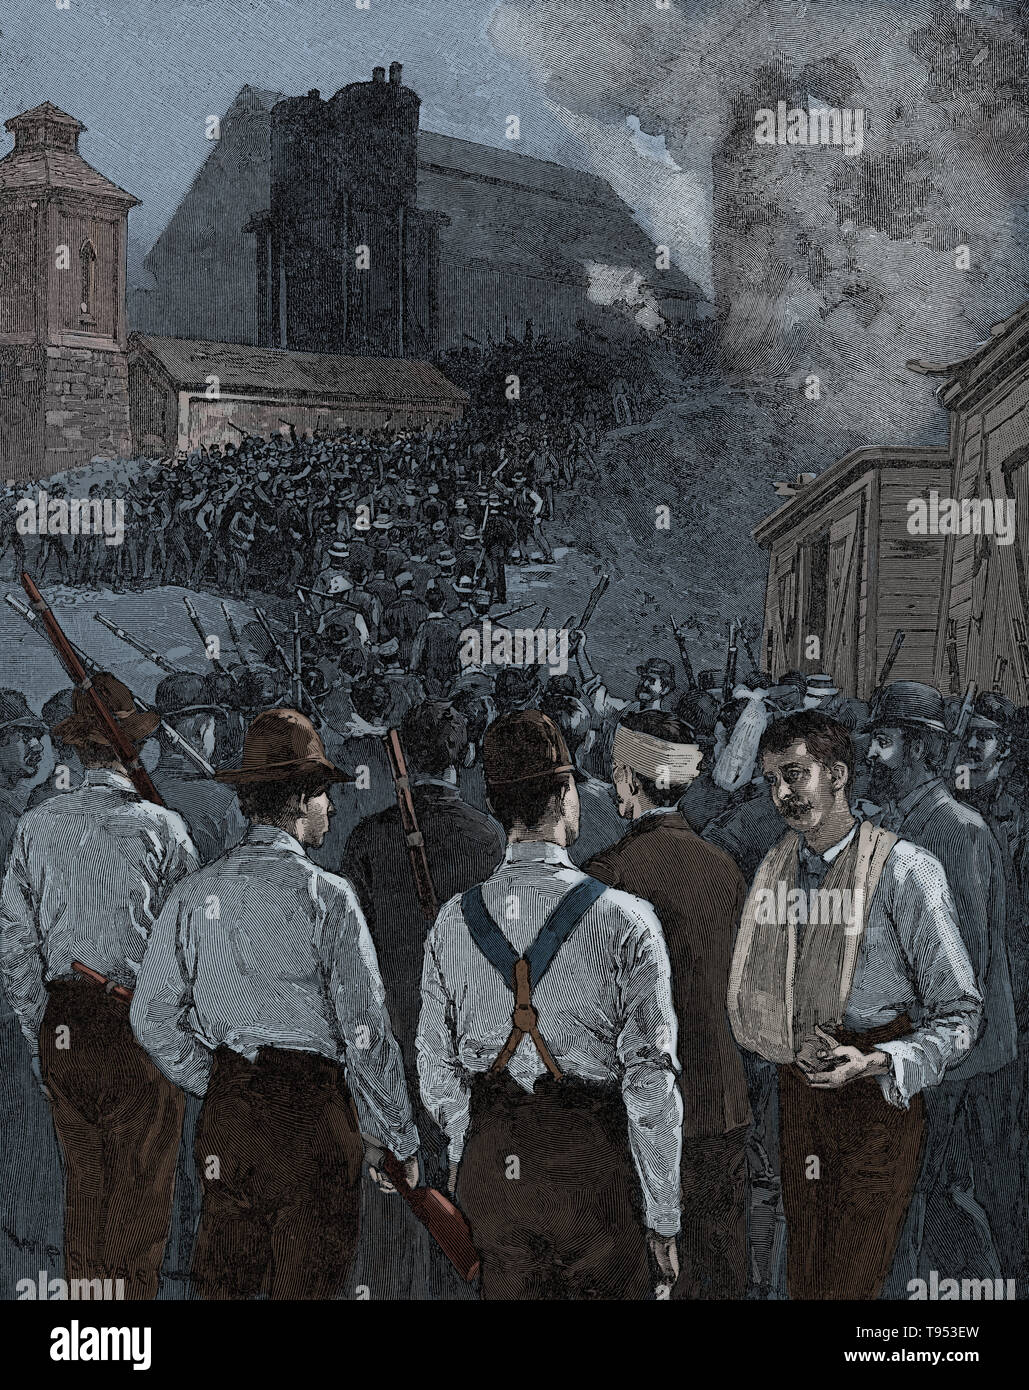 The Homestead Strike was an industrial lockout and strike which began on June 30, 1892, culminating in a battle between strikers and private security agents on July 6, 1892. The battle was the second largest and one of the most serious disputes in US labor history second only to the Battle of Blair Mountain. The dispute occurred at the Homestead Steel Works in the Pittsburgh area town of Homestead, Pennsylvania, between the Amalgamated Association of Iron and Steel Workers (the AA) and the Carnegie Steel Company. The final result was a major defeat for the union and a setback for efforts to un - Stock Image